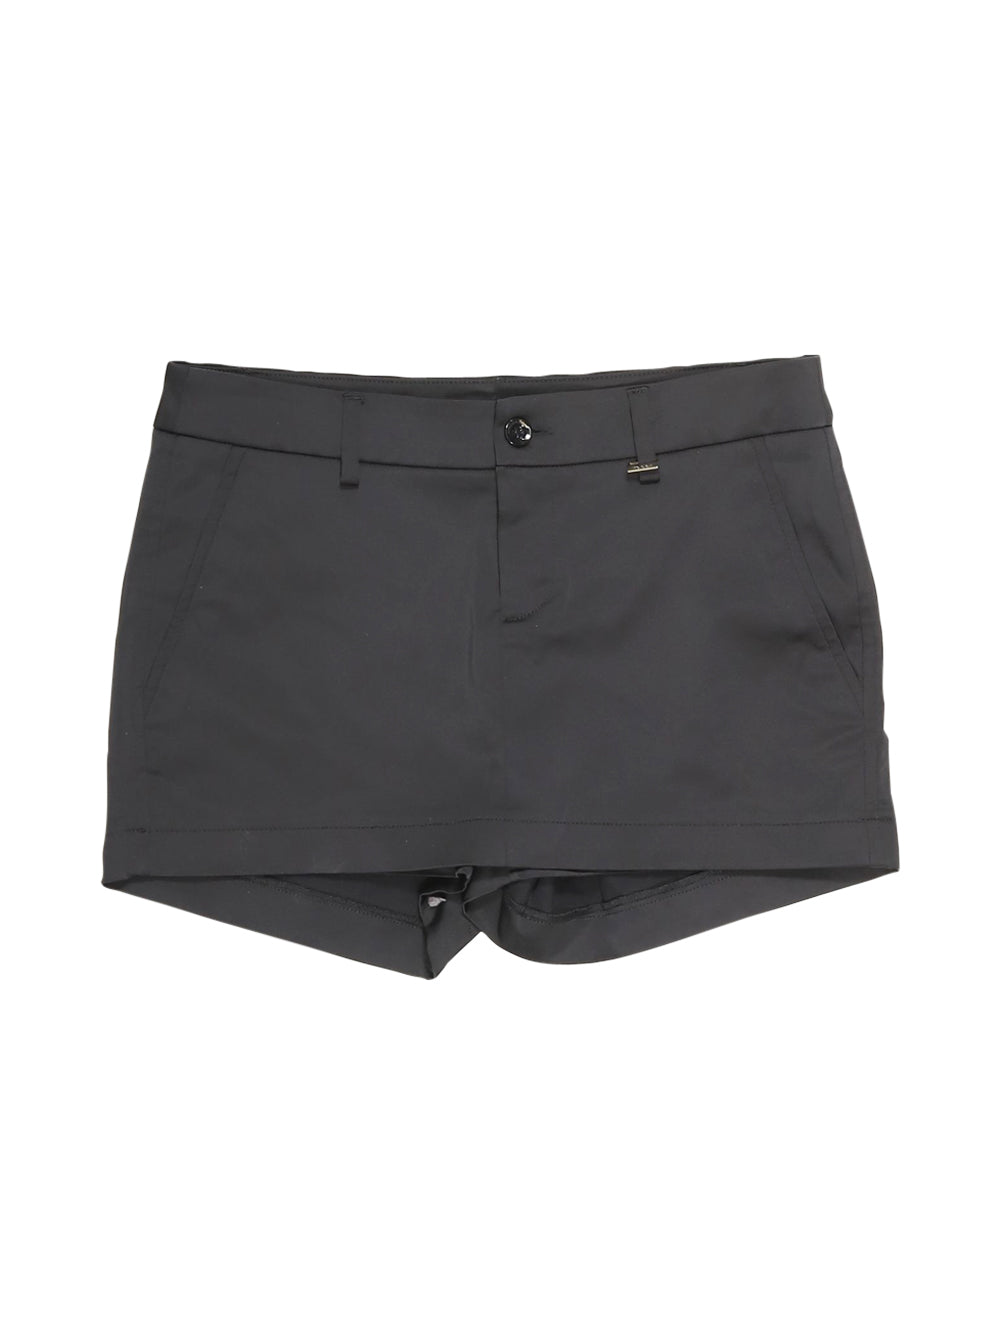 Front photo of Preloved Kocca Black Woman's shorts - size 6/XS